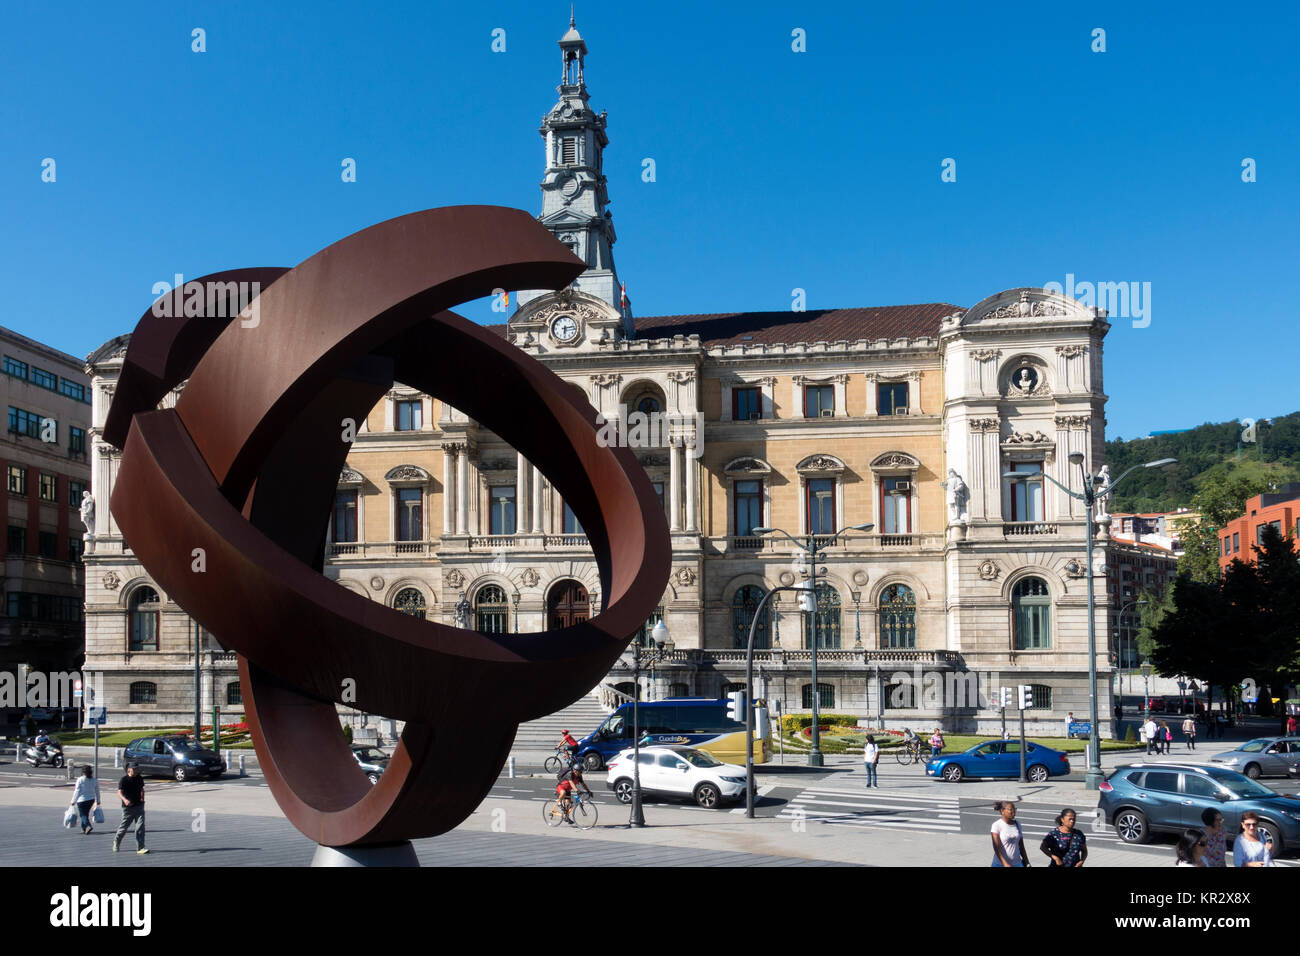 Sculpture (artist: Jorge Oteiza Title:Variante Ovoide)and city hall.Bilbao.Vizcaya.Spain - Stock Image